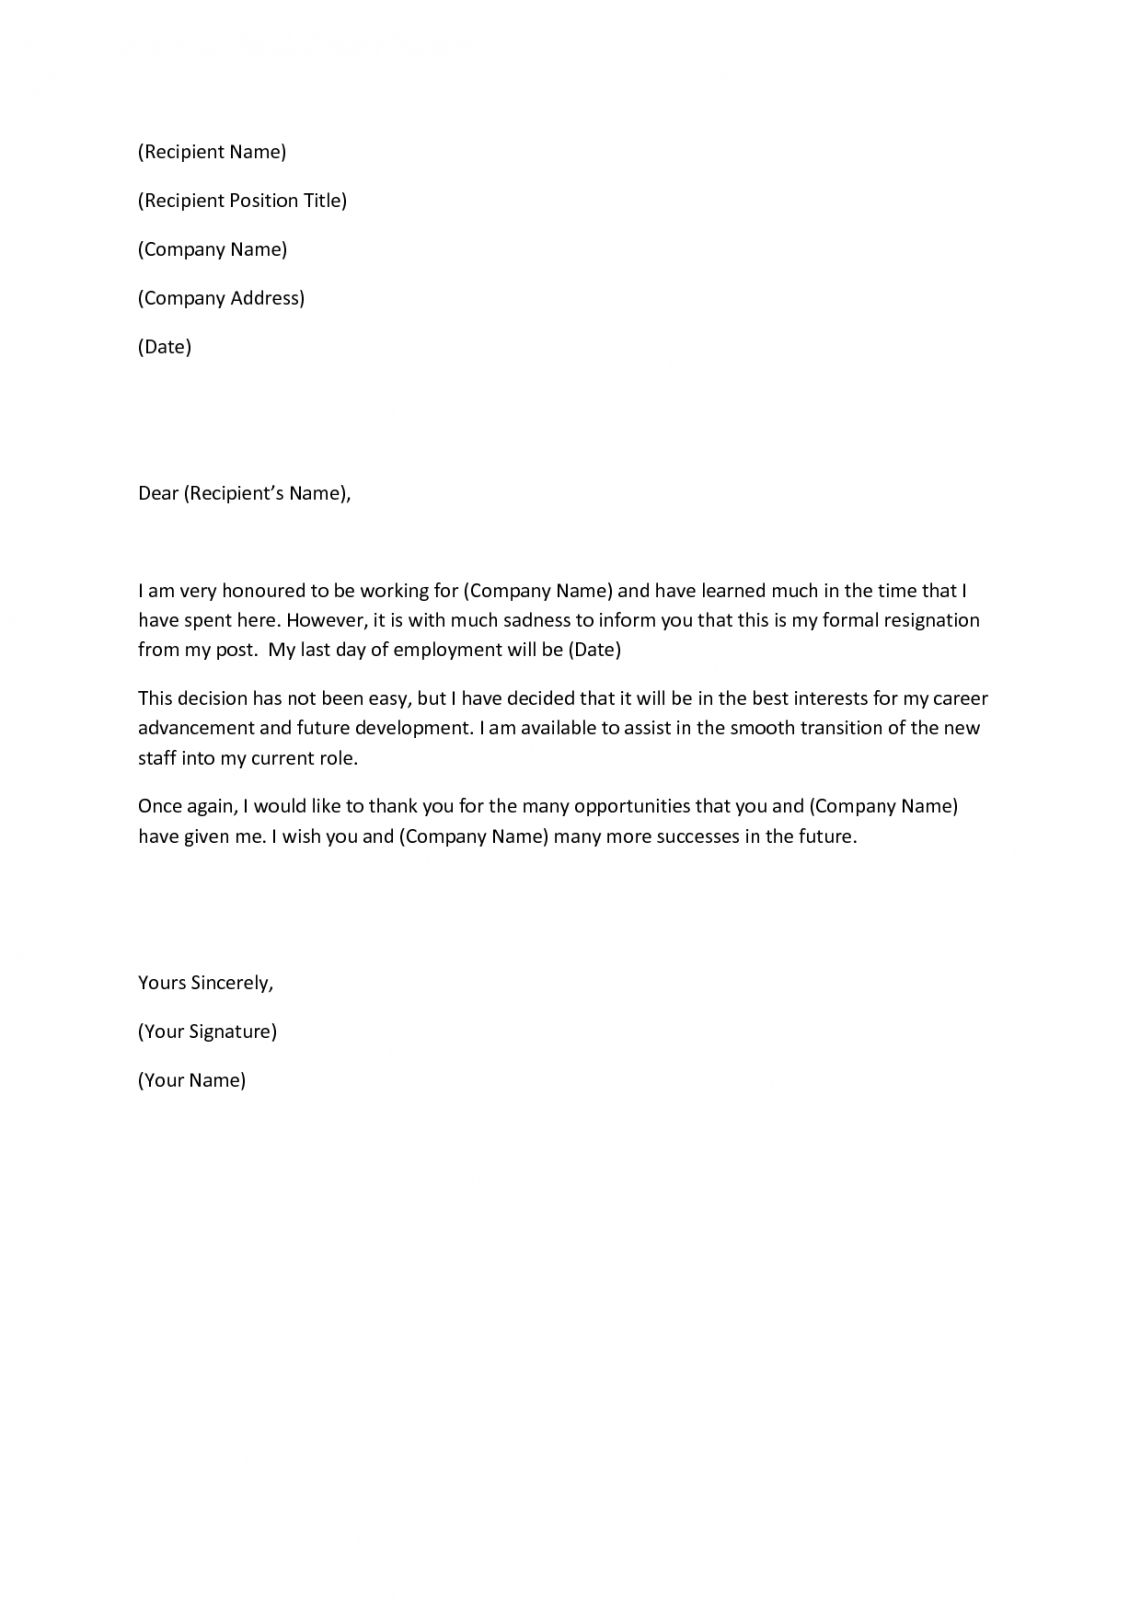 Explore Our Image of Heartfelt Resignation Letter To